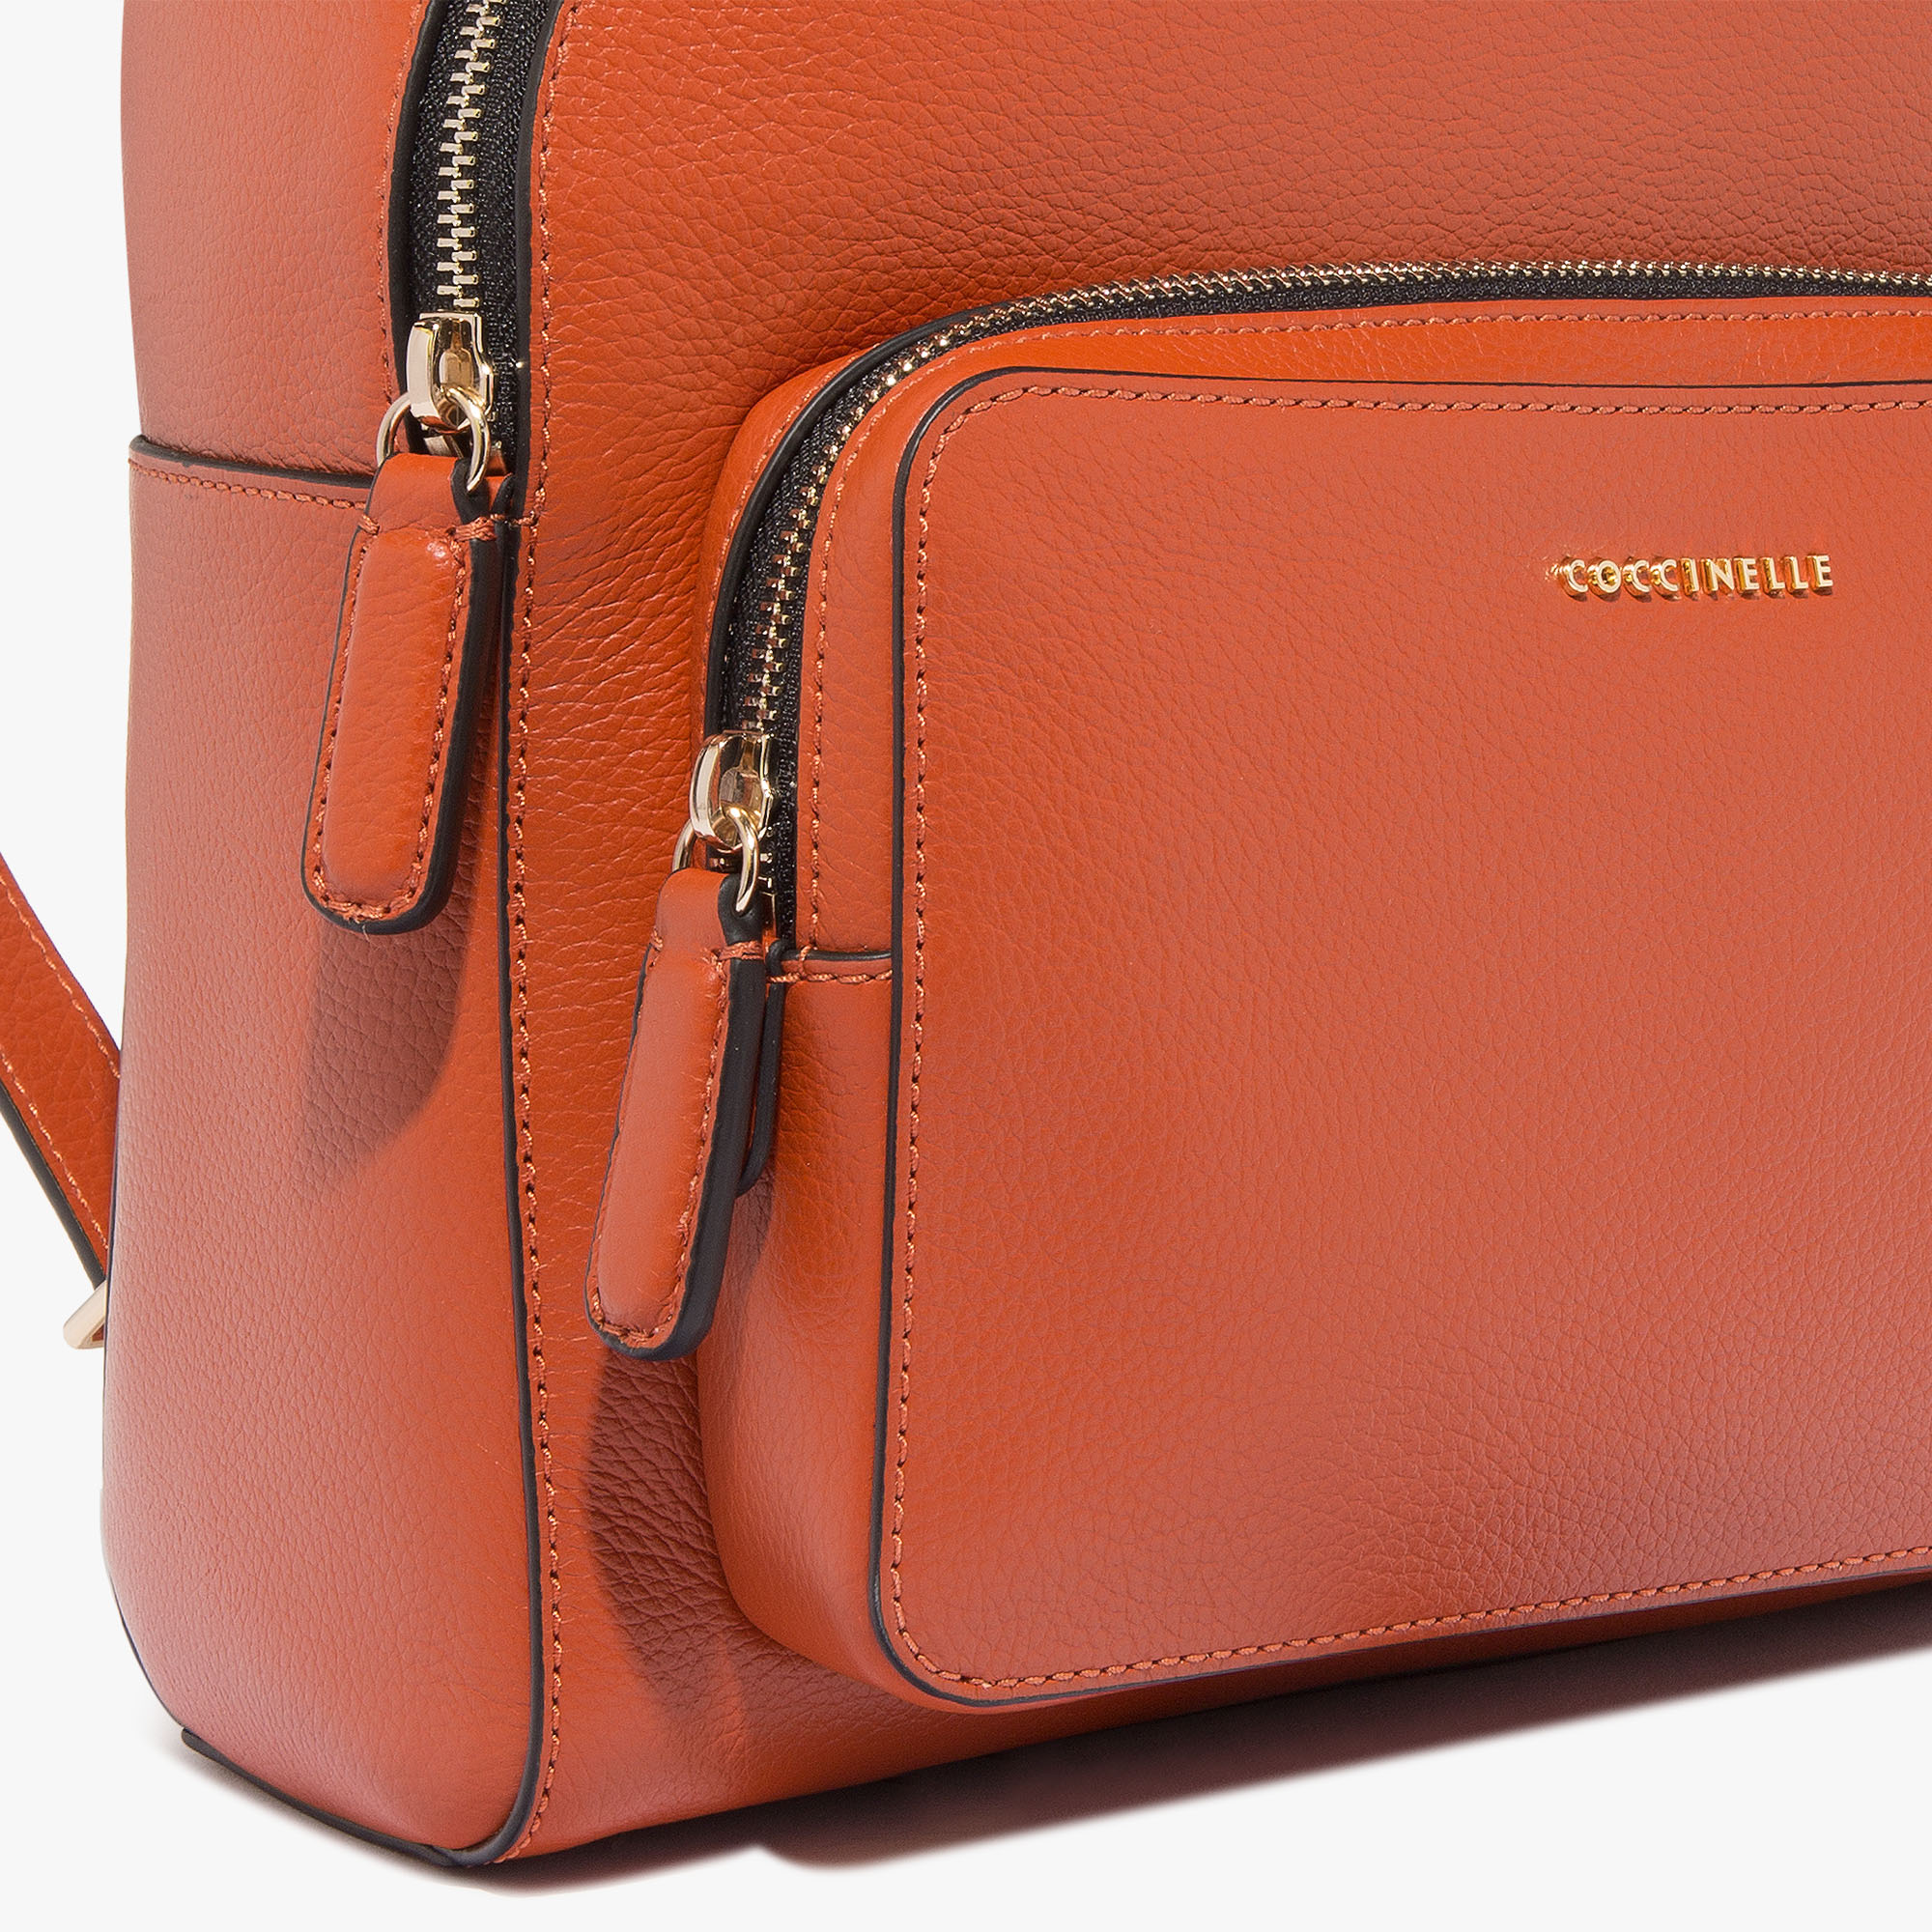 Clementine leather backpack bag